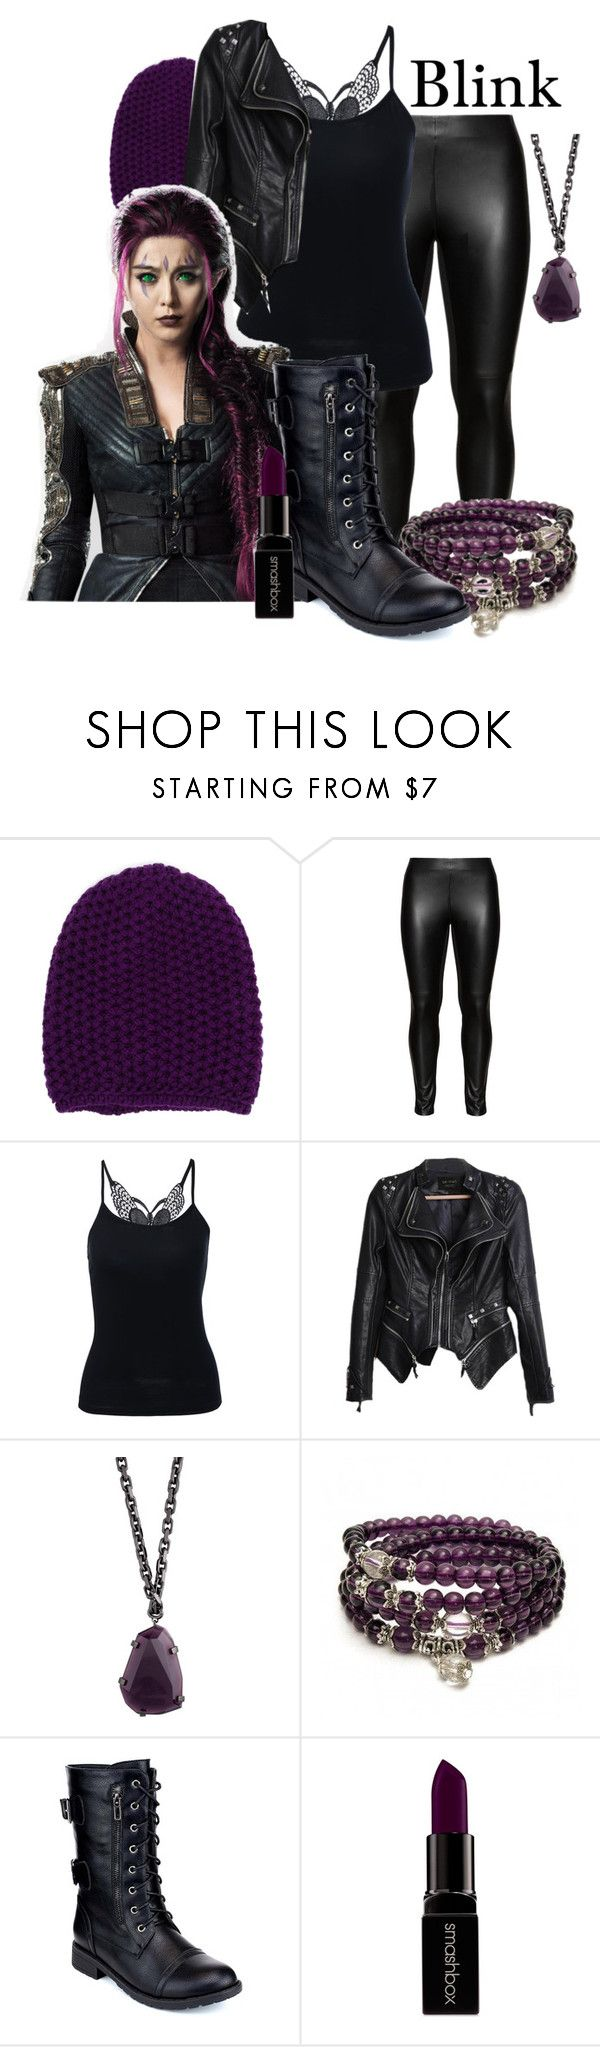 """Random #9 - Blink (X-Men)"" by xfandomtrashx ❤ liked on Polyvore featuring Inverni, Studio, Burberry, Refresh, Smashbox, blink, xmen and xmengirls"